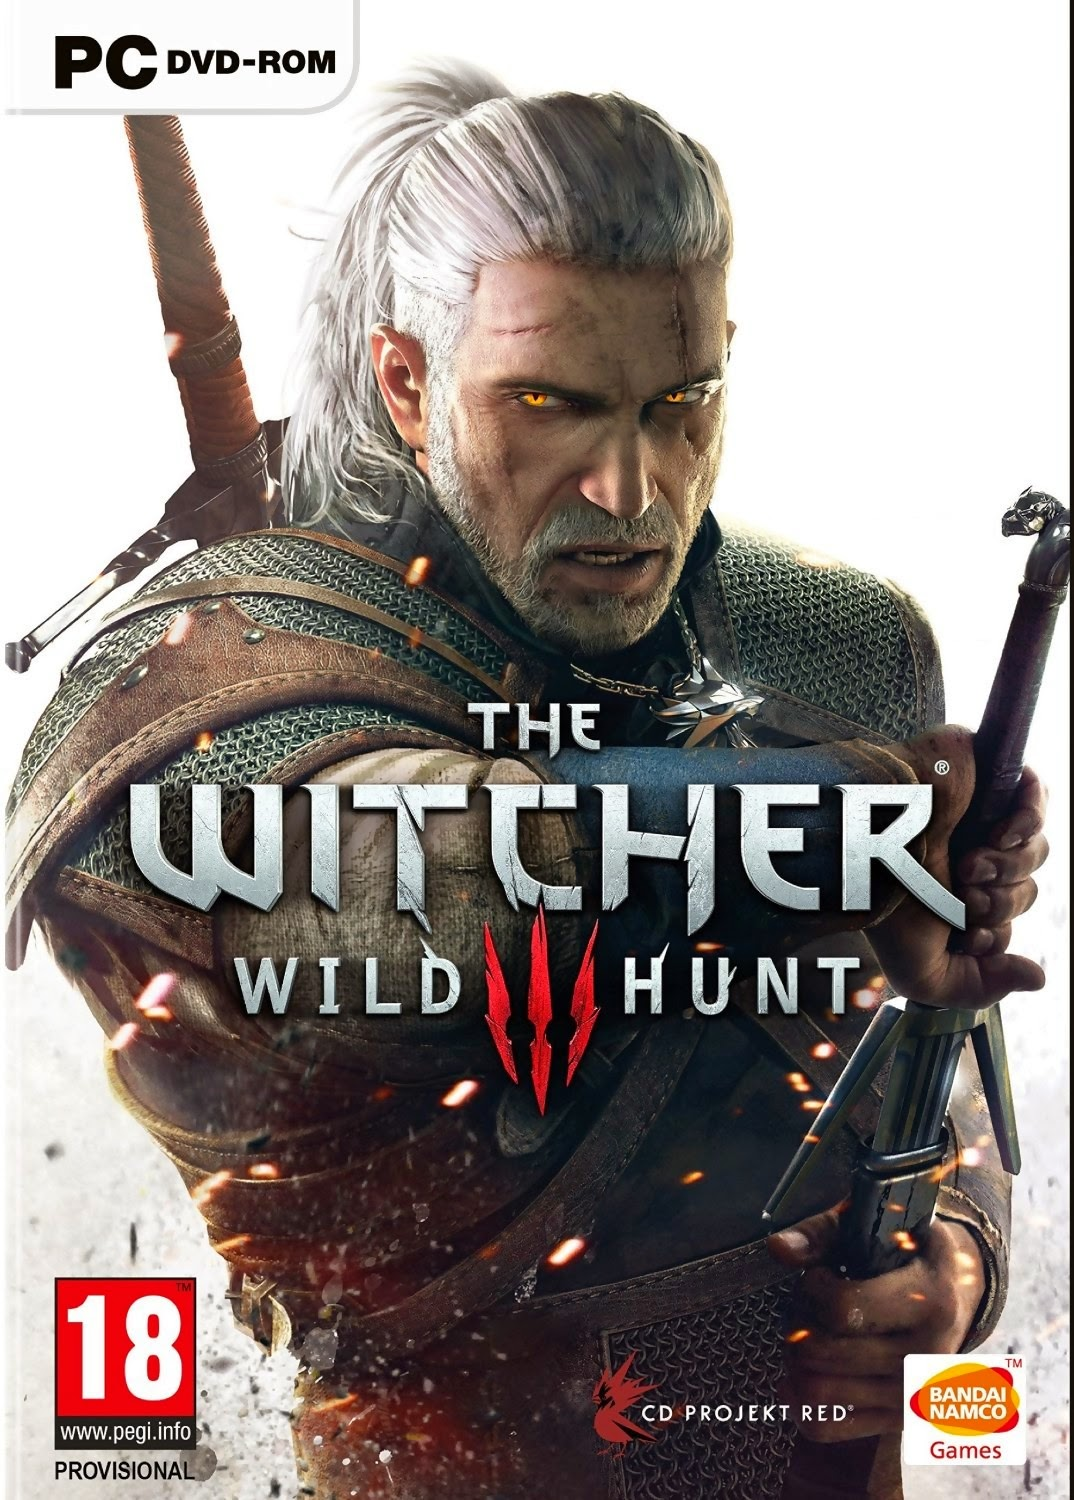 The Witcher 3 Wild Hunt ESPAÑOL PC Full Cover Caratula